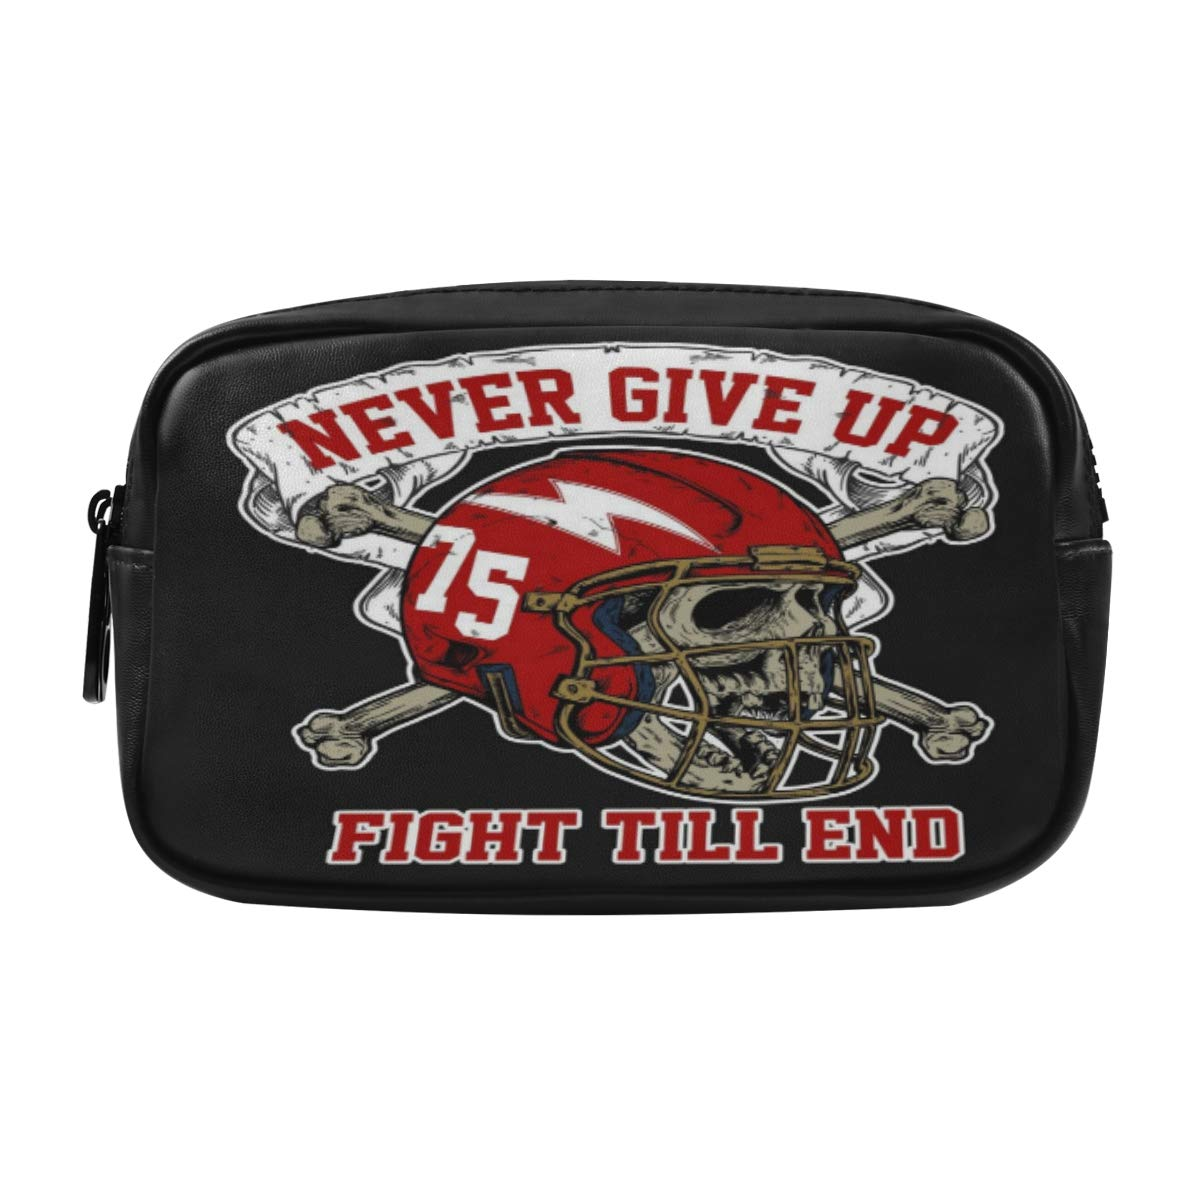 ALAZA Head Skull Wearing Football Helmet and Cross Bone Cosmetic Bag Leather Pencil Case Waterproof Portable Travel Makeup Pouch with Zipper for Women Girls Teens